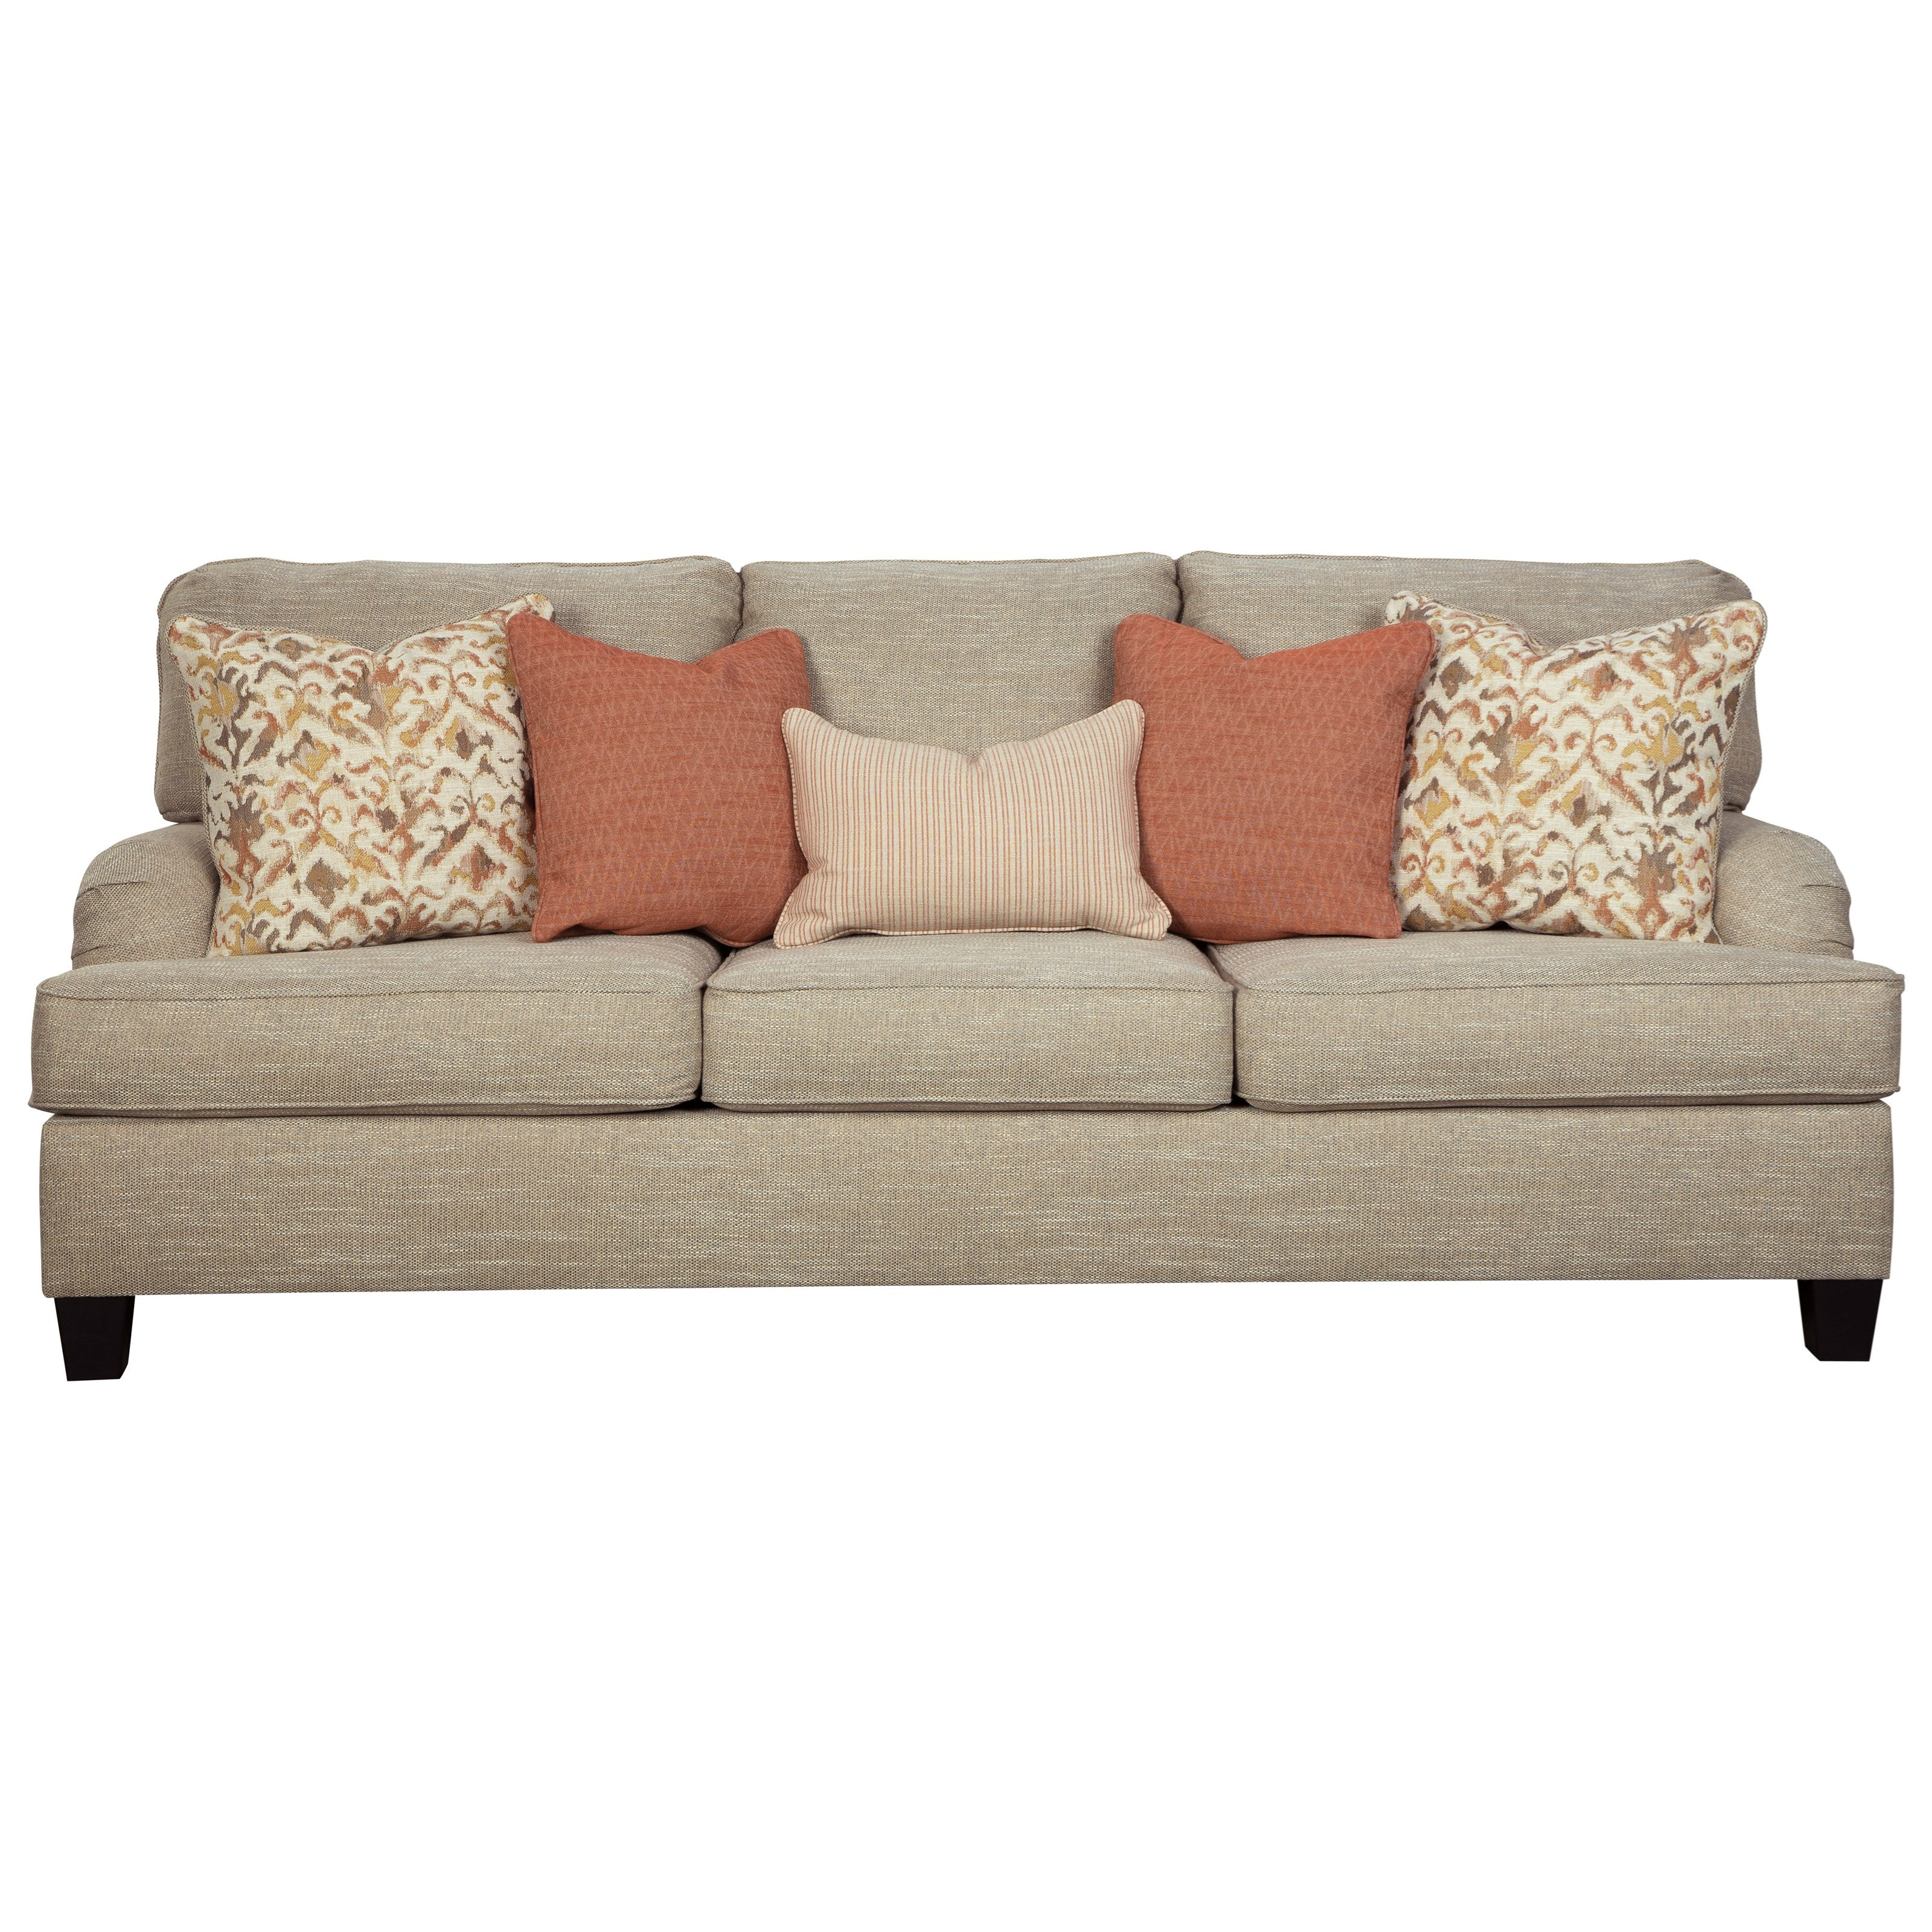 Almanza Sofa by Signature Design by Ashley at Value City Furniture